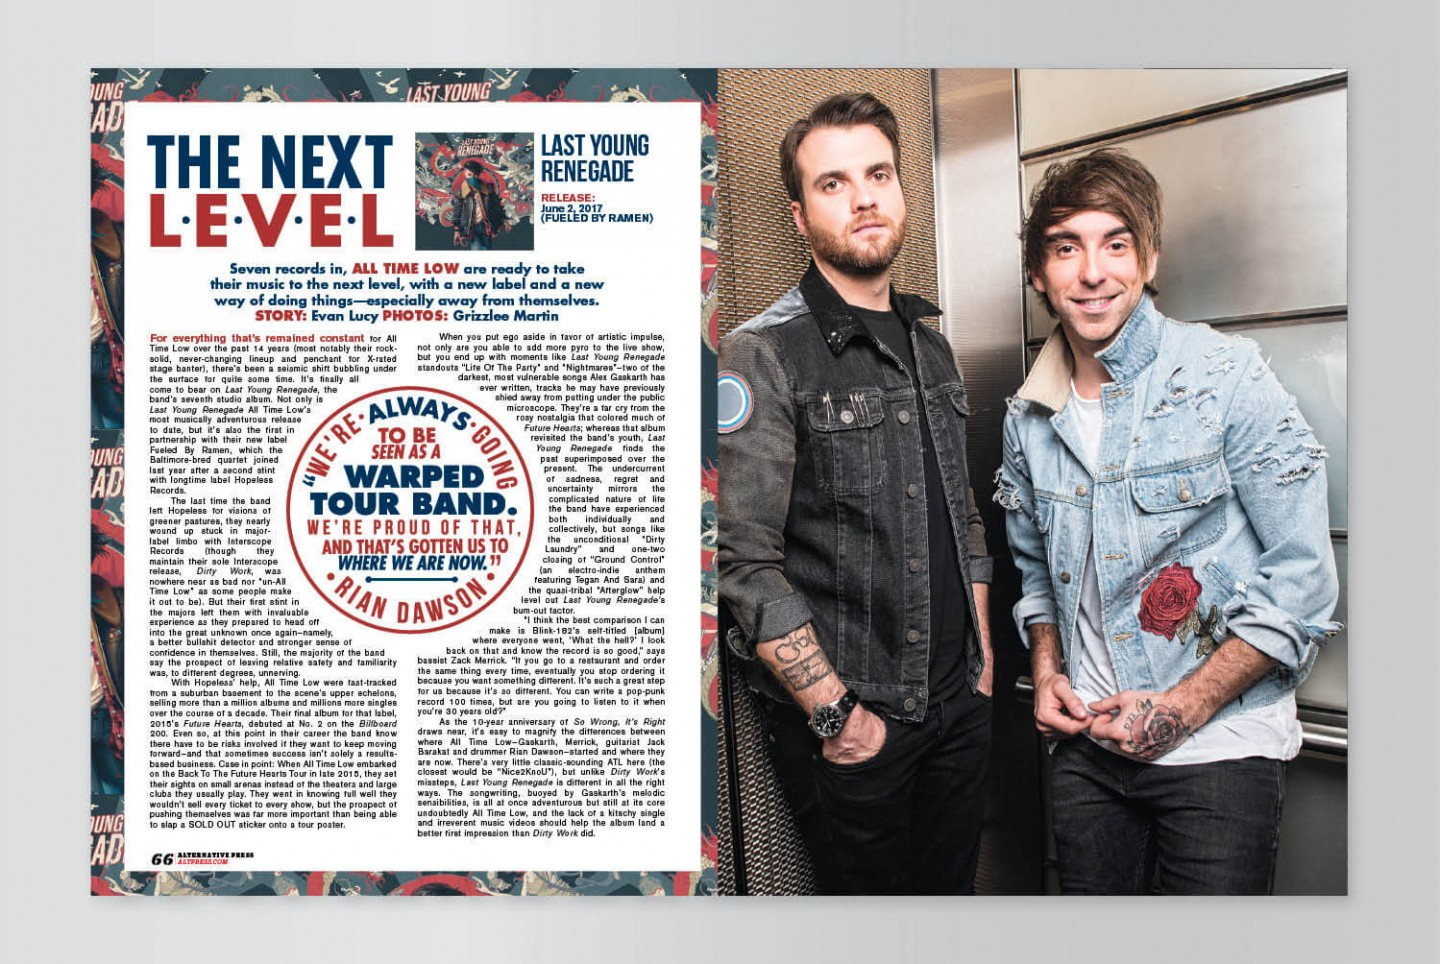 All Time Low Cover Story